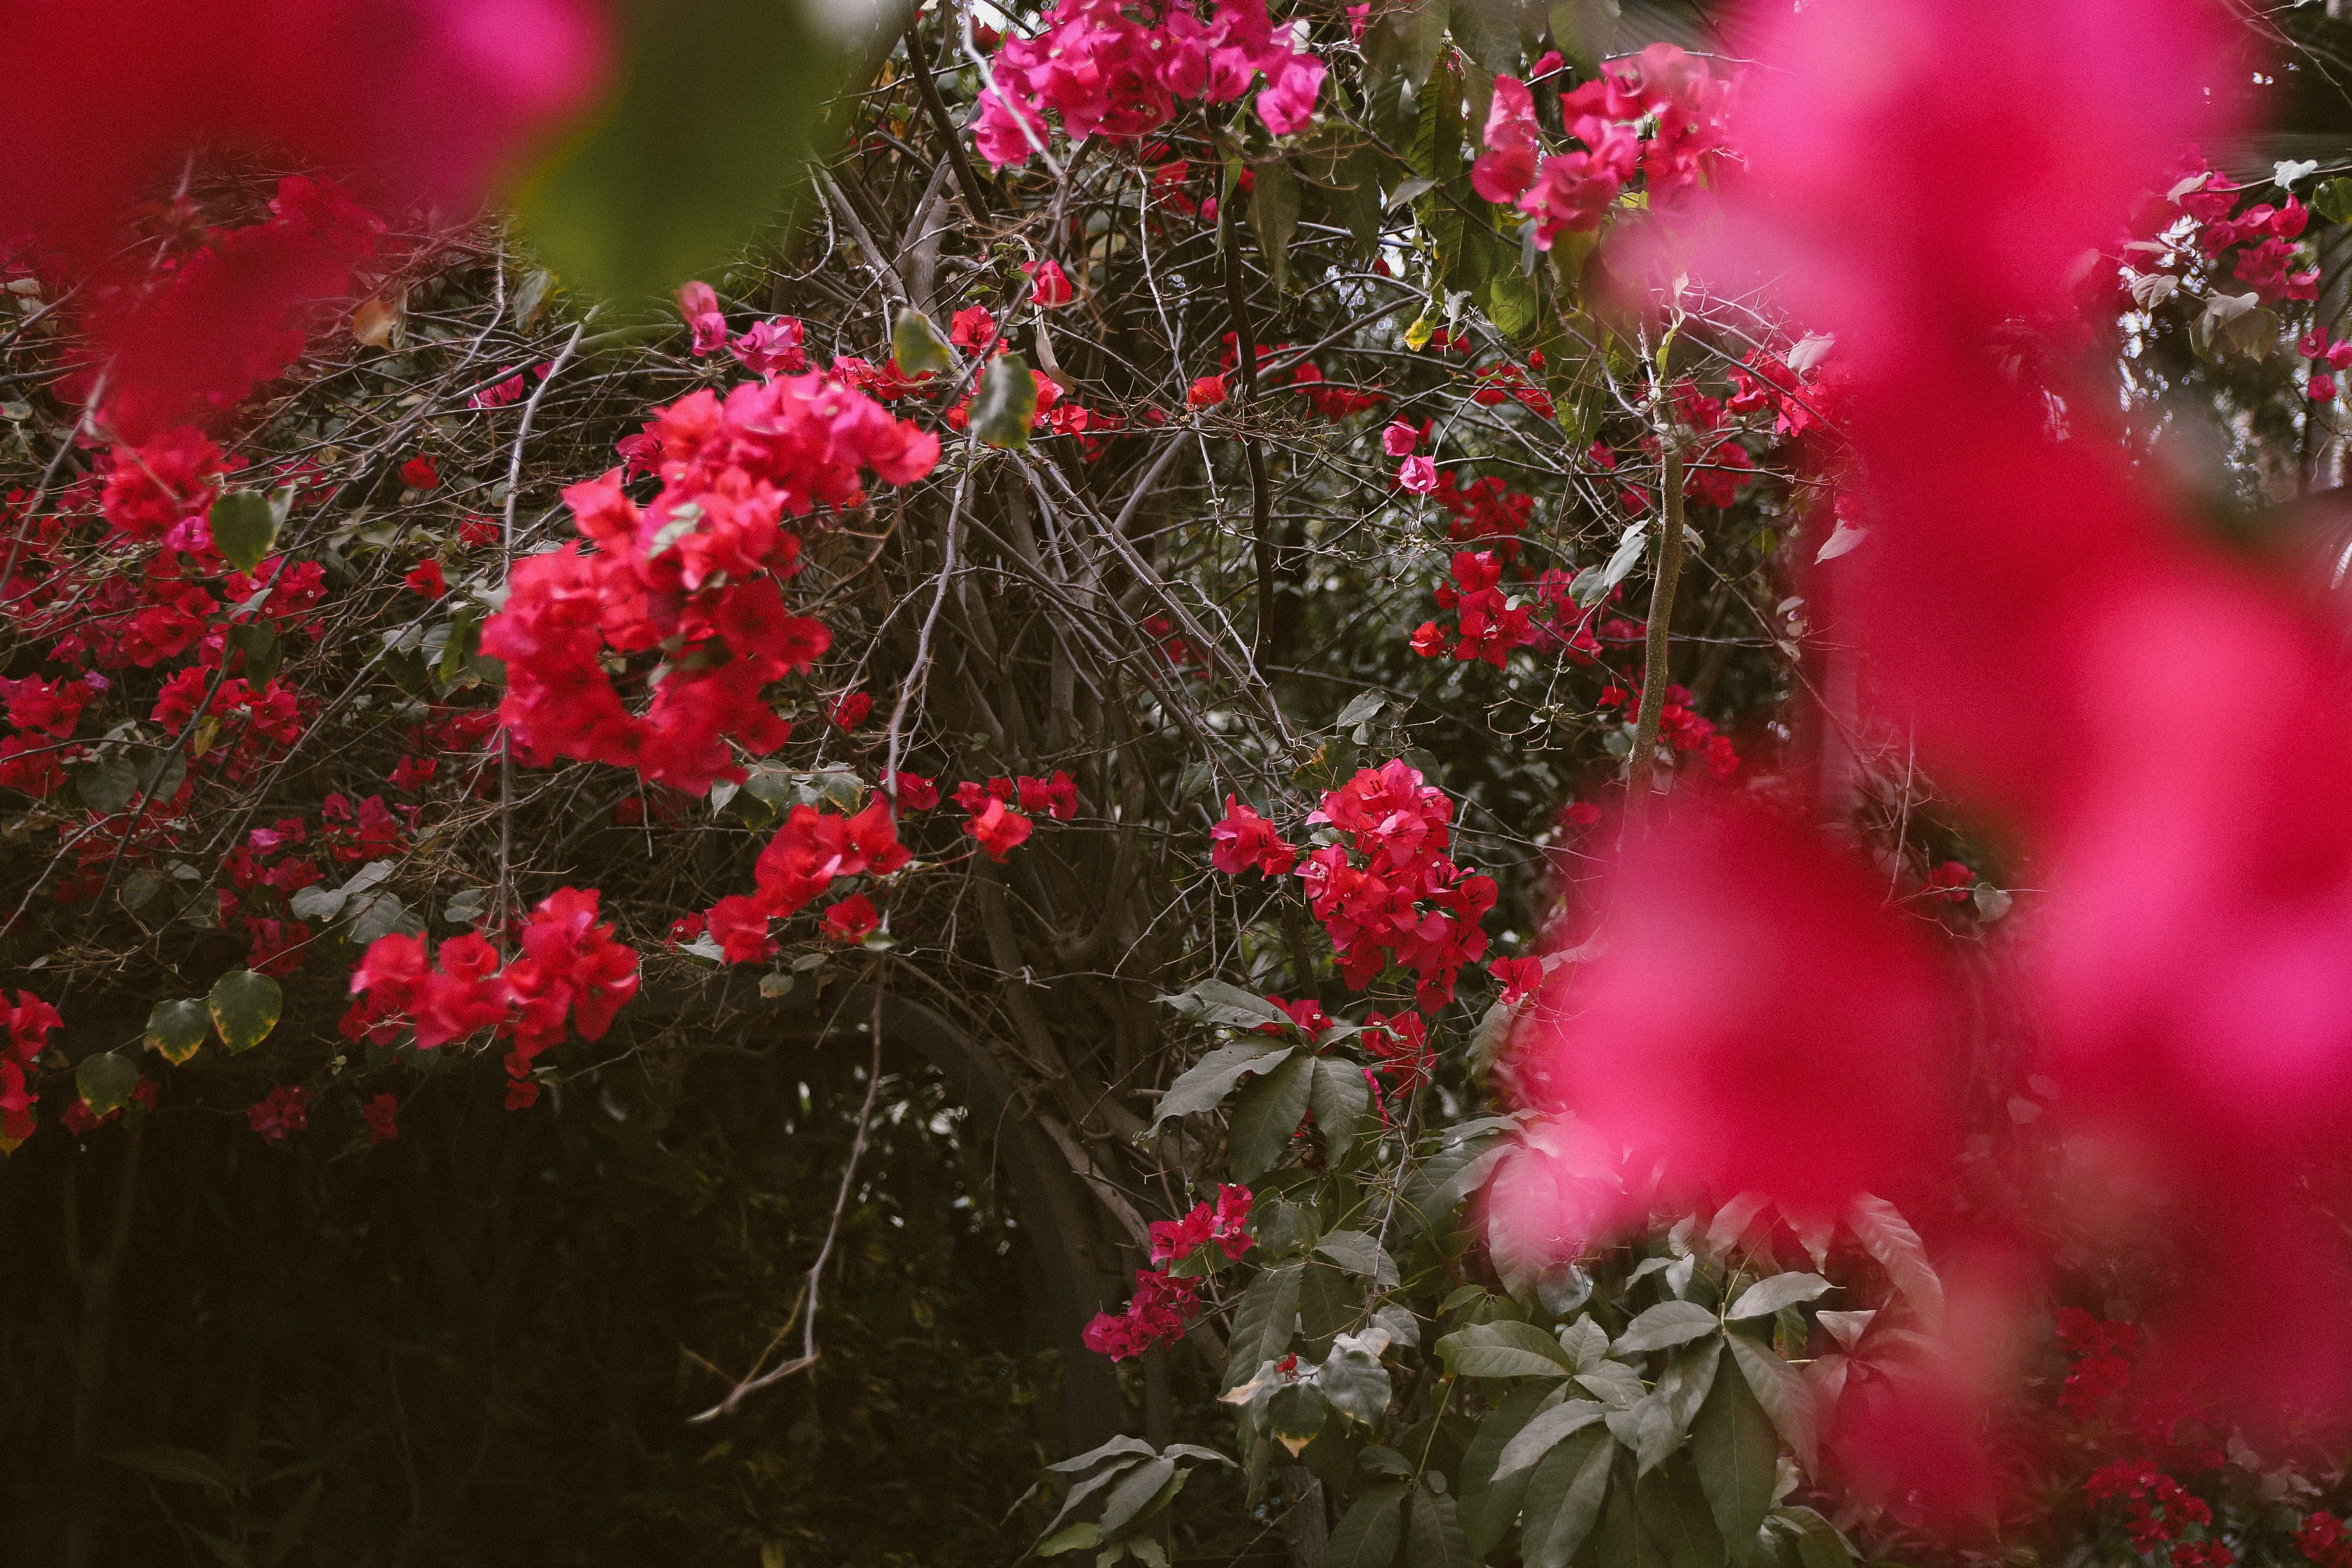 Selective Focus Photo of Red Bougainvillea Flowers